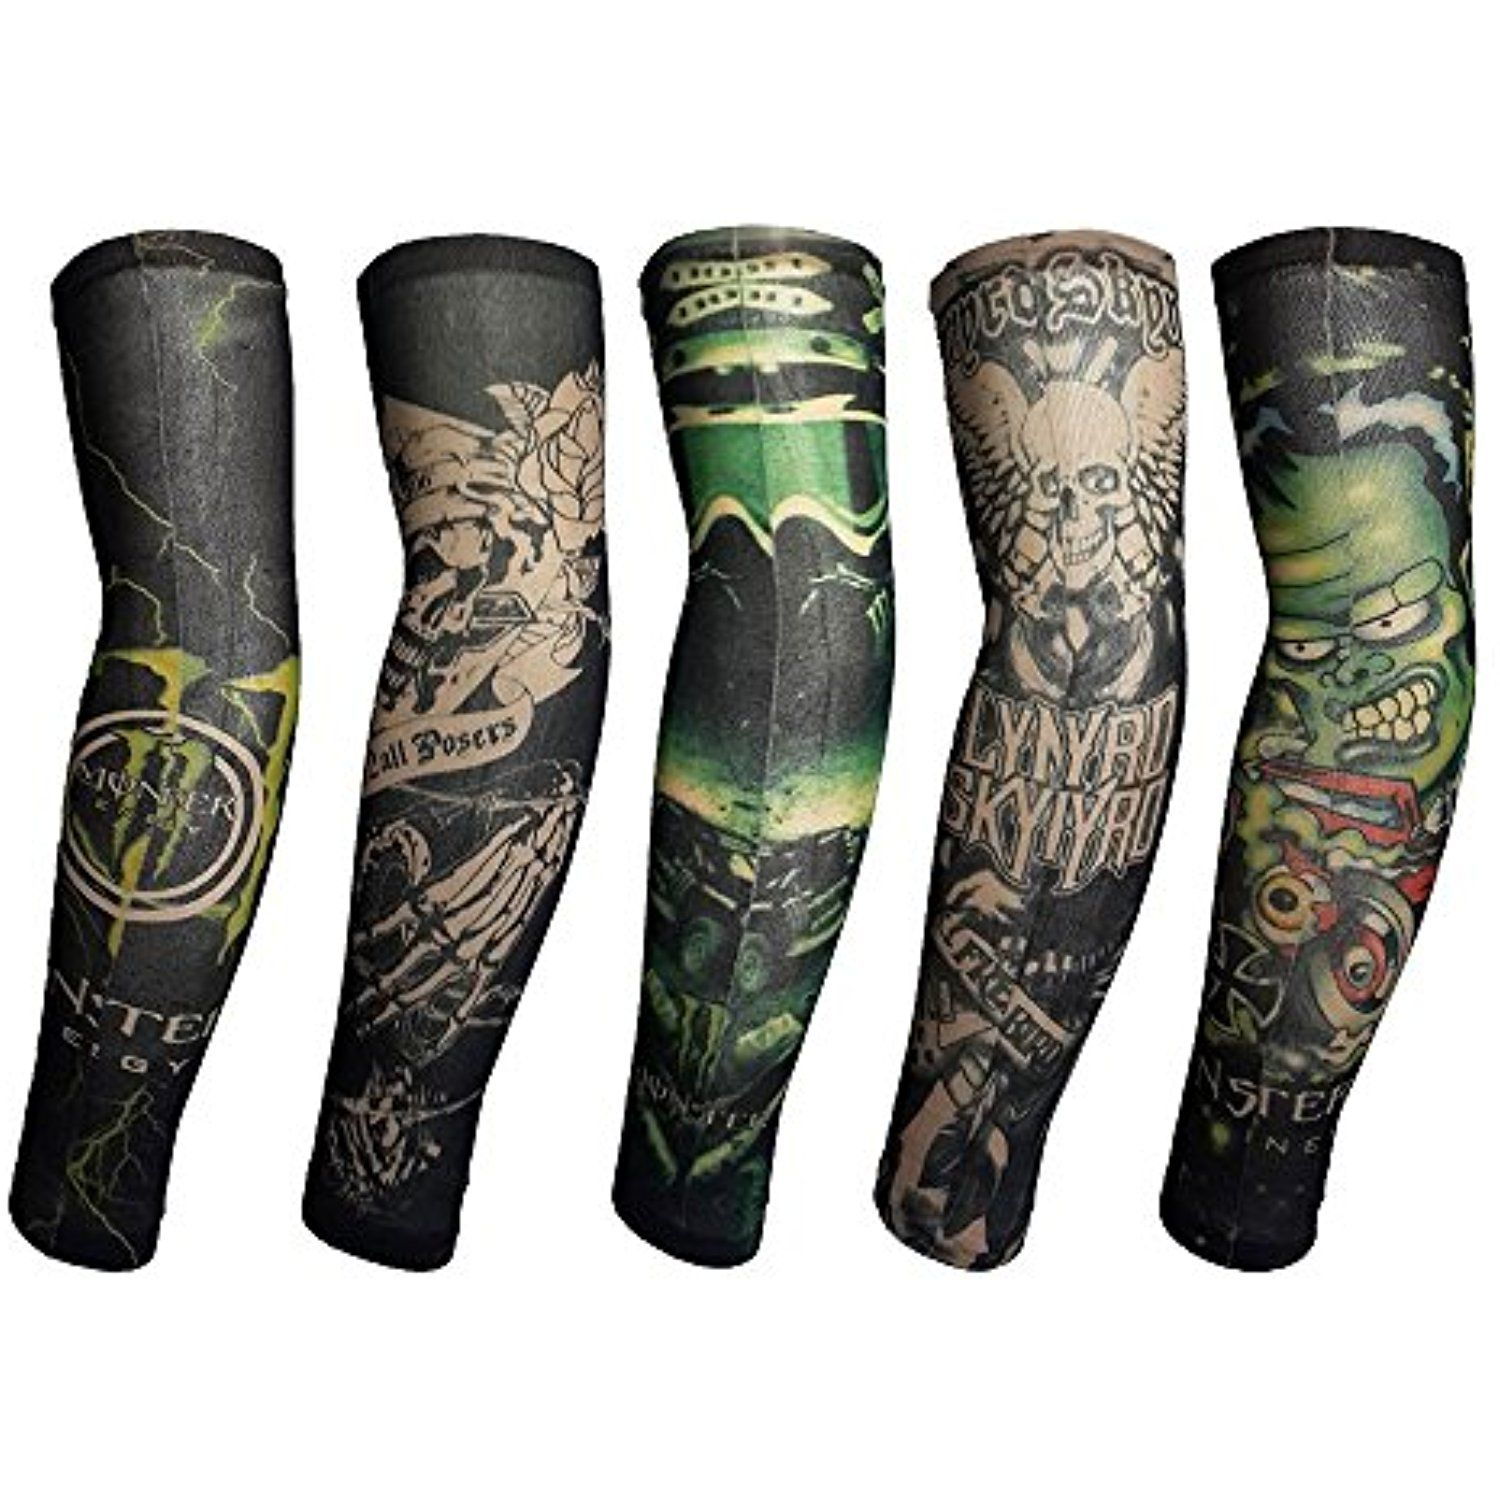 4 Sheets Extra Large Temporary Tattoos, Full Arm >>> You